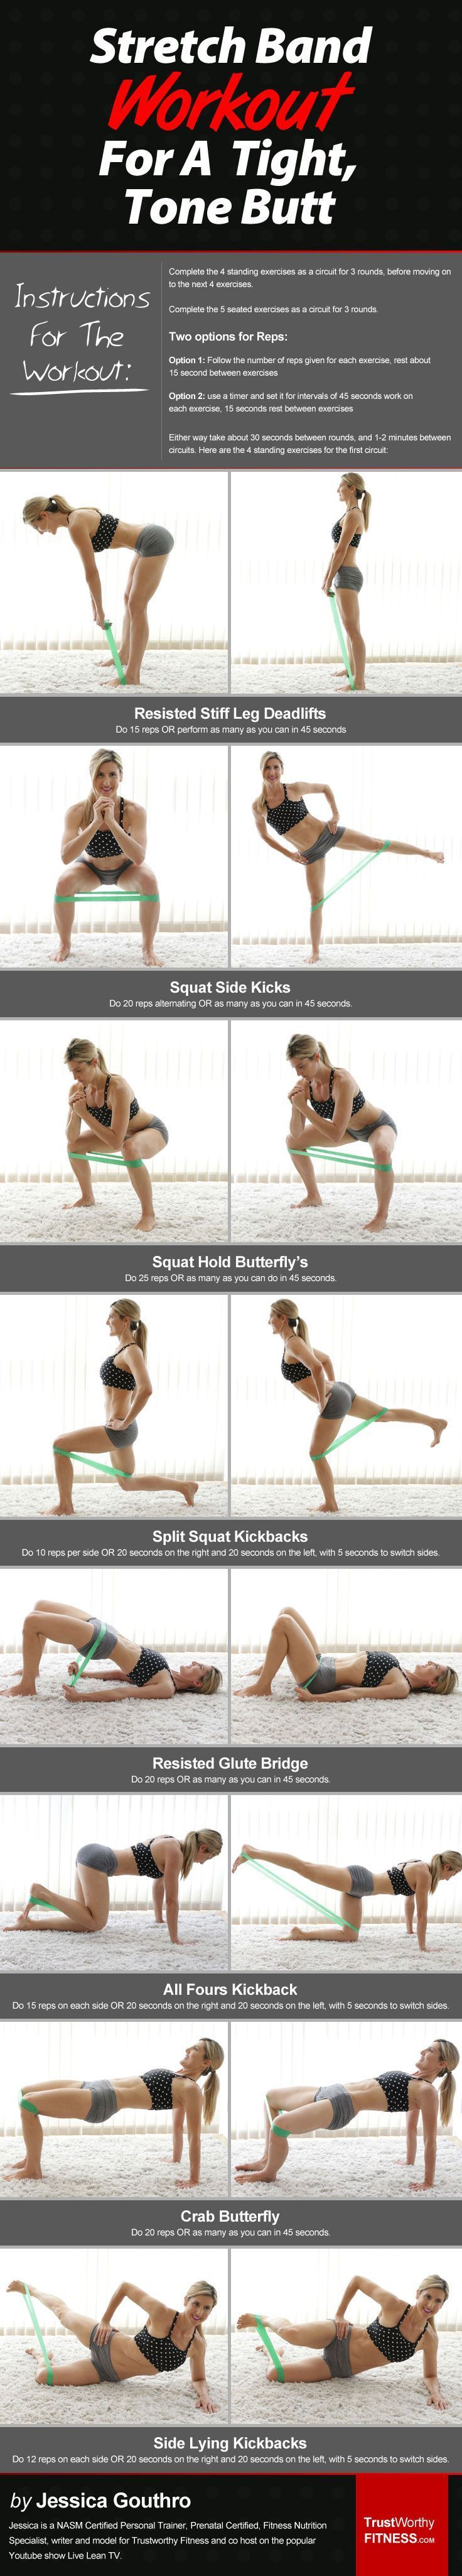 In this step by step workout discover how to get a beach ready booty without going to the gym using Stretch Bands. This workout can also be done without them too. http://trustworthyfitness.com/how-to-use-stretch-bands-tone-your-butt/ - Tap the pin if you love super heroes too! Cause guess what? you will LOVE these super hero fitness shirts! #HowtoWorkout